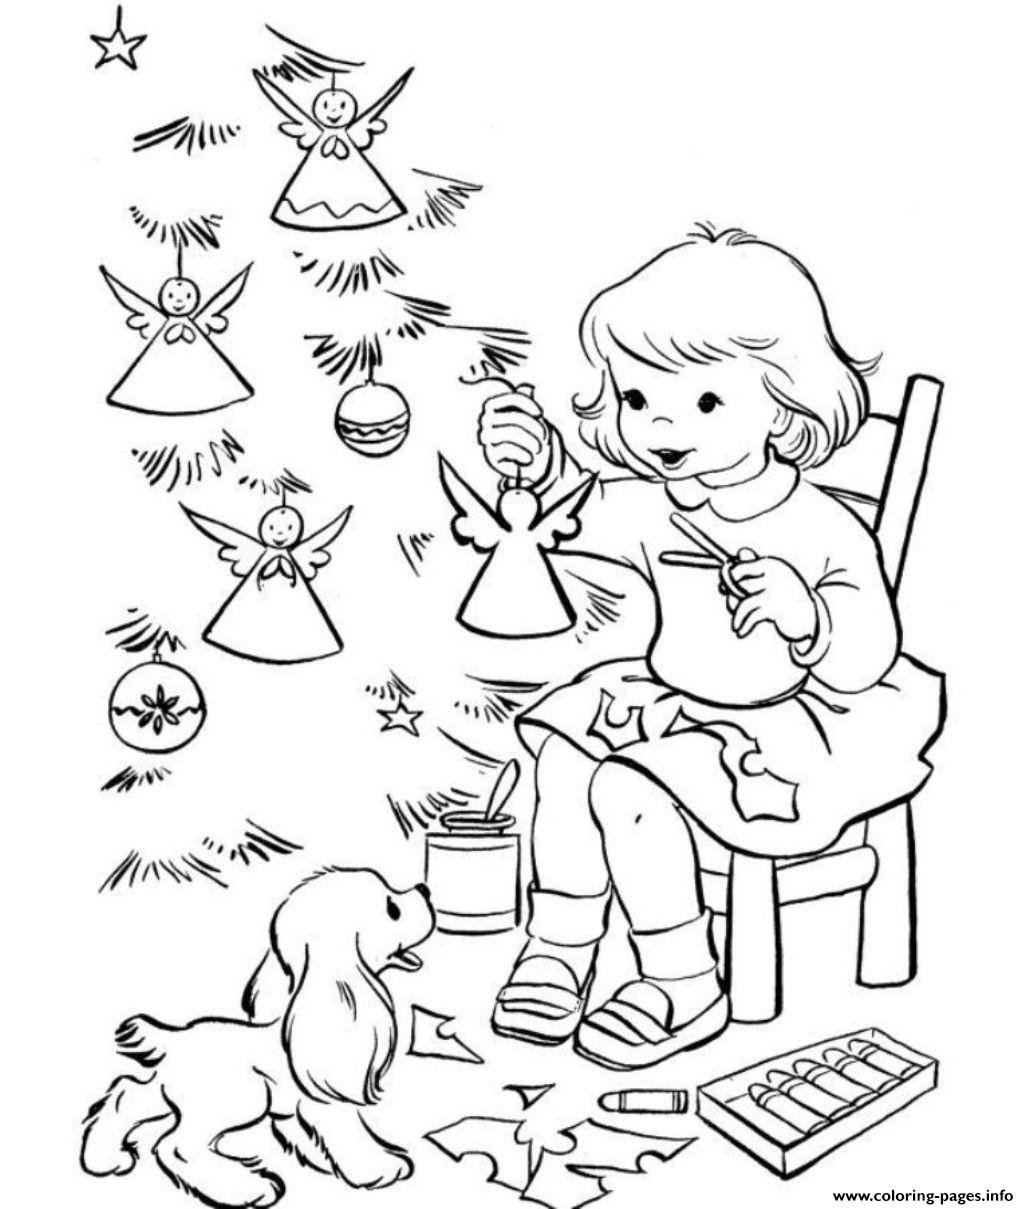 Coloring Pages Christmas Tree Decoratingadc0 coloring pages